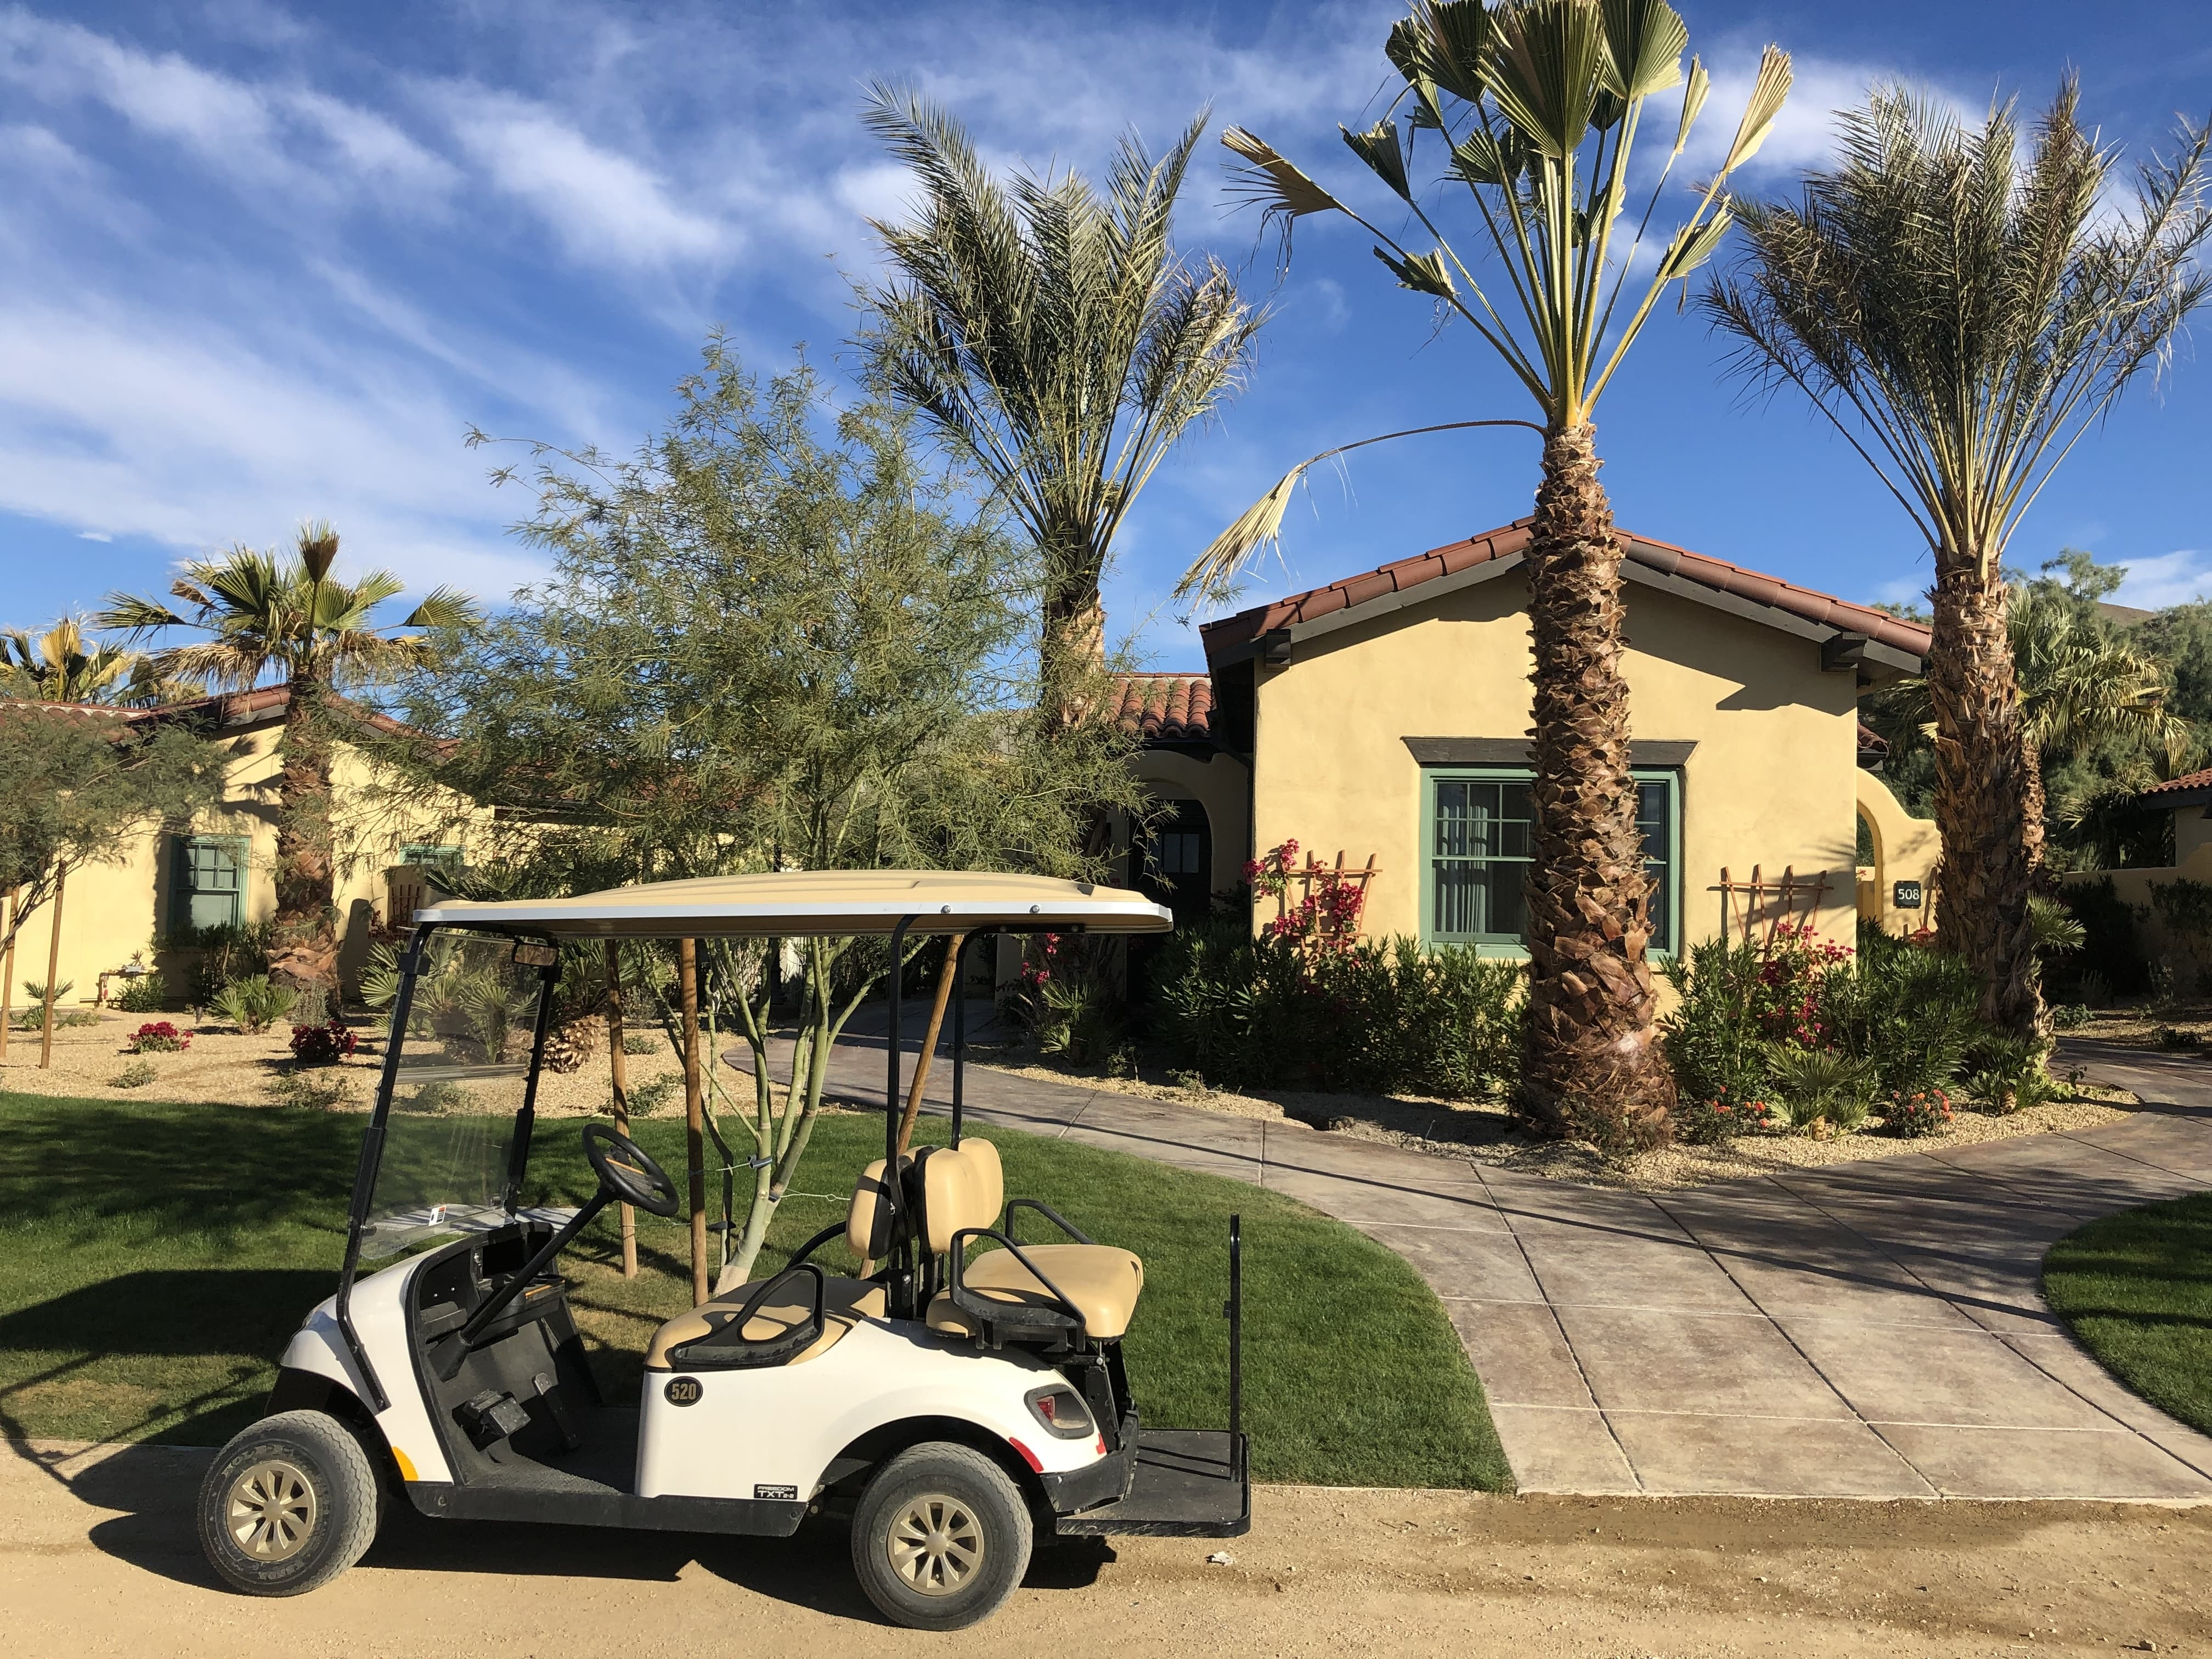 The Casita is over 500 square feet and comes with a complimentary golf cart for us to use to get around in The Inn at Death Valley